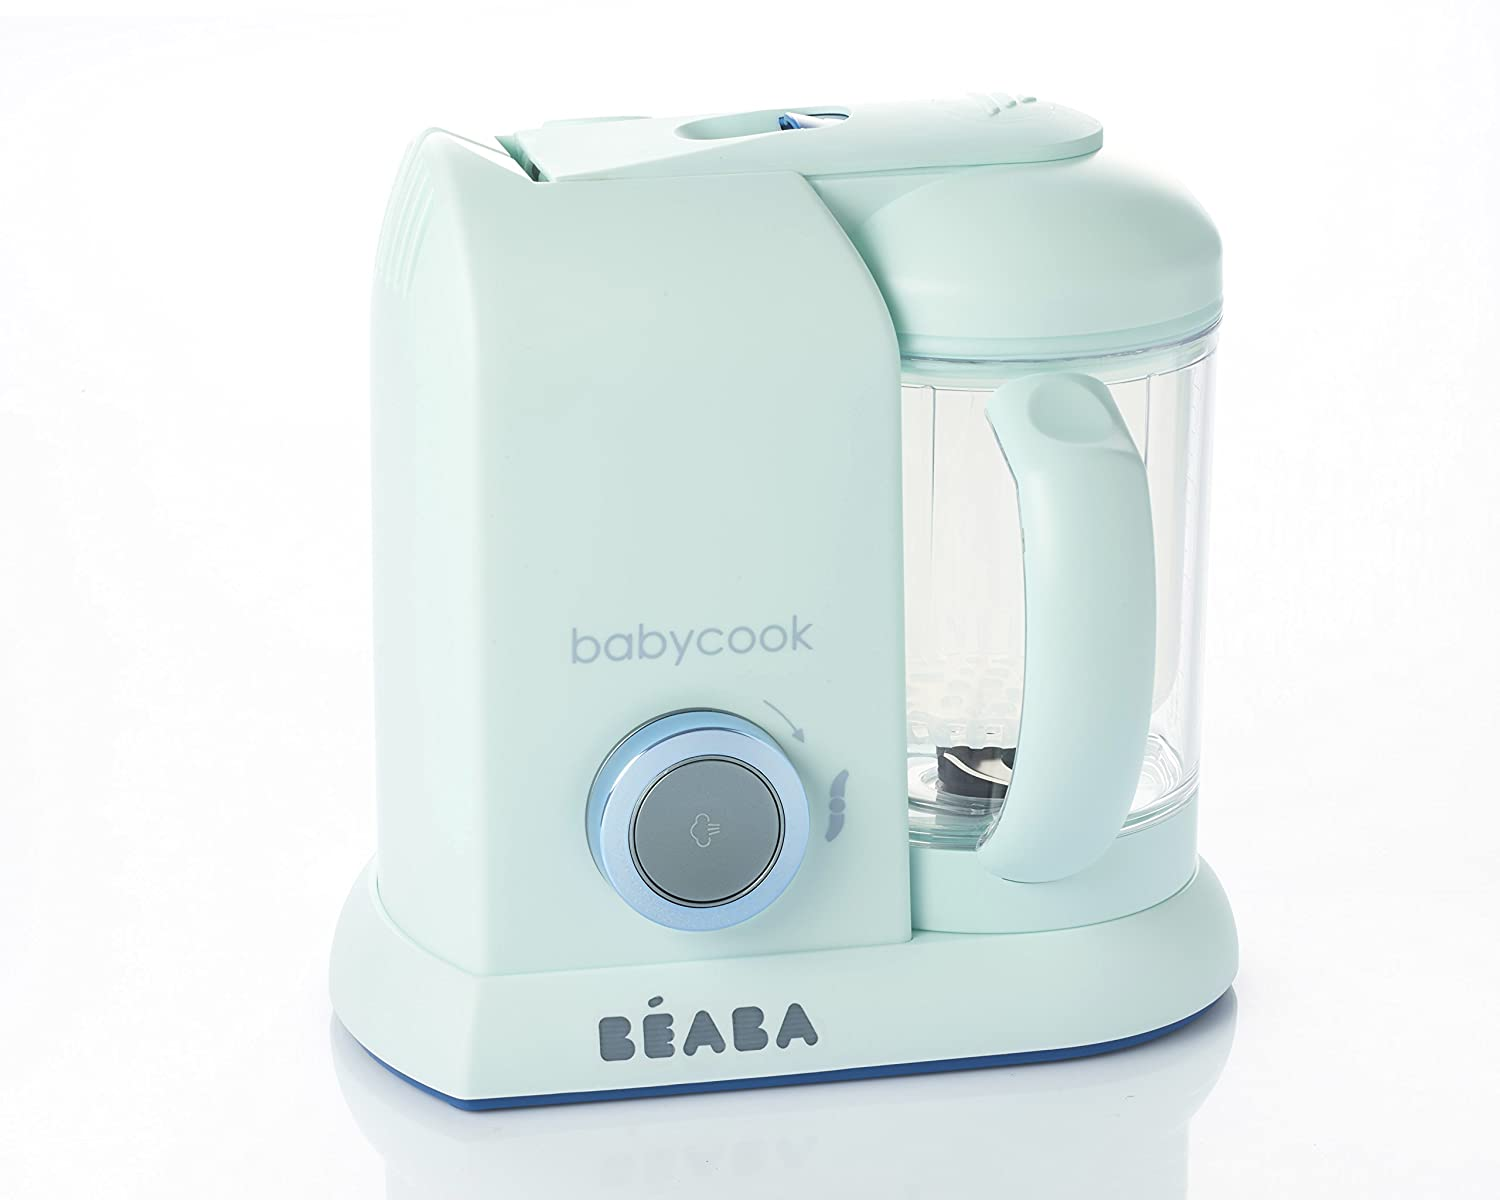 BEABA Babycook 4 in 1 Steam Cooker and Blender, 4.5 Cups, Dishwasher Safe, Blueberry